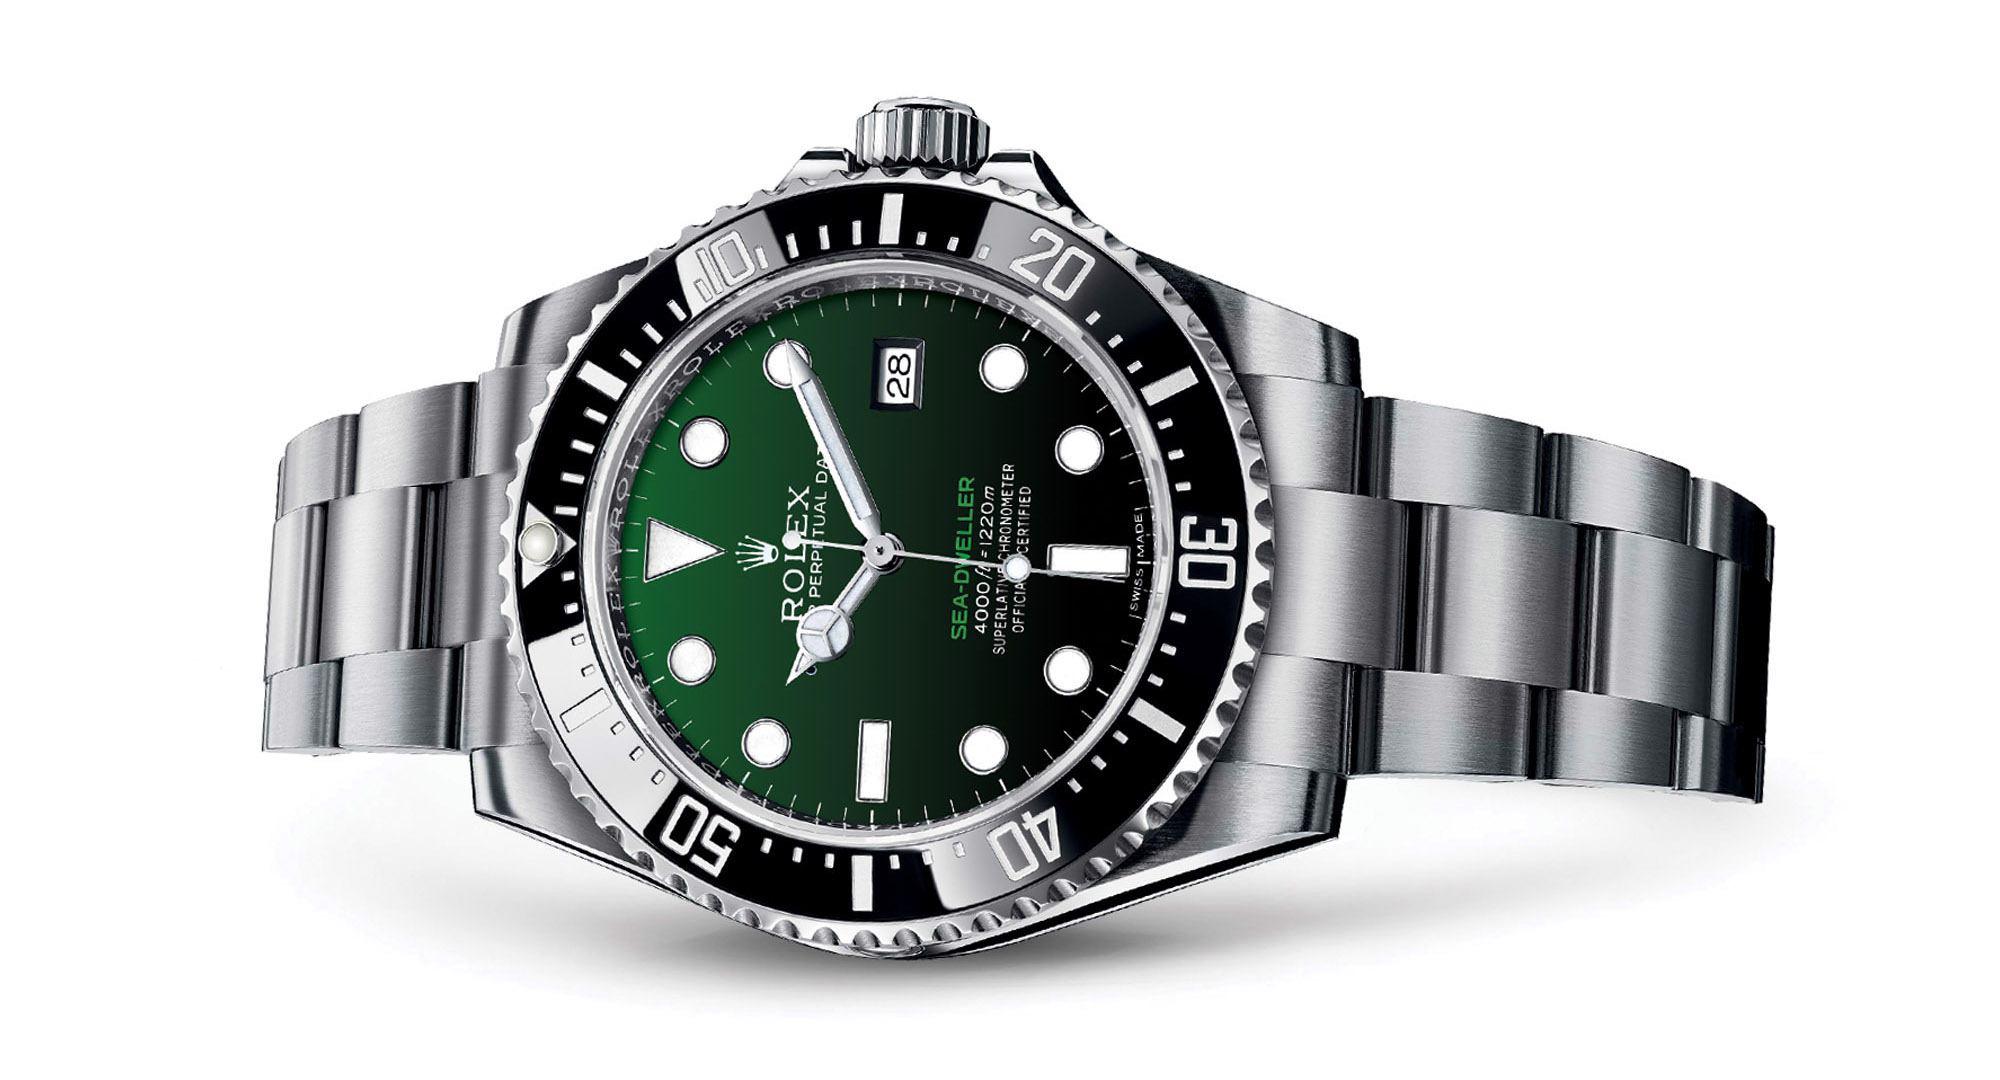 Rolex Watches 2017 Humble Watches